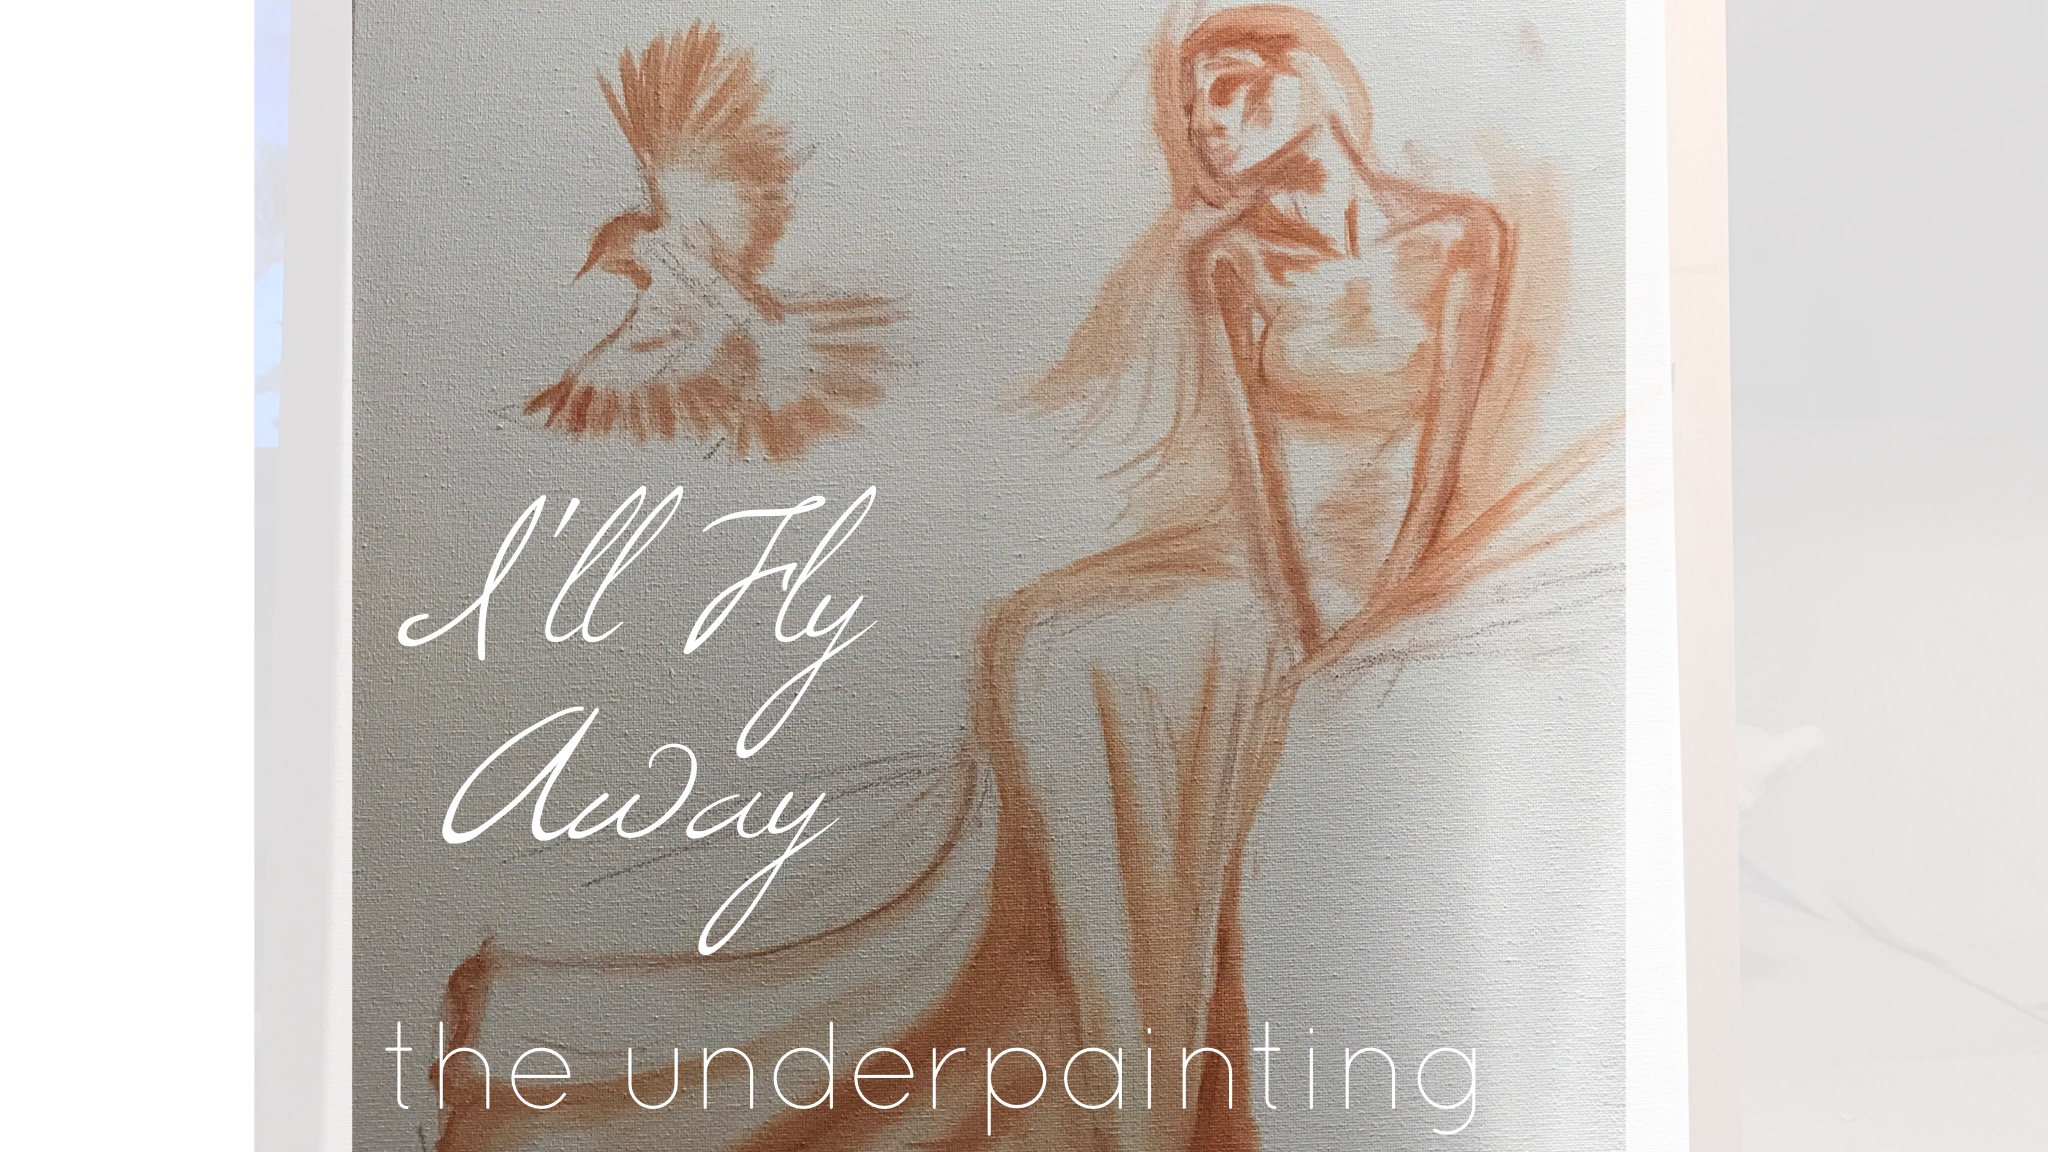 I'll Fly Away- the underpainting, by Shelby Hohsfield at shelbyathome.com